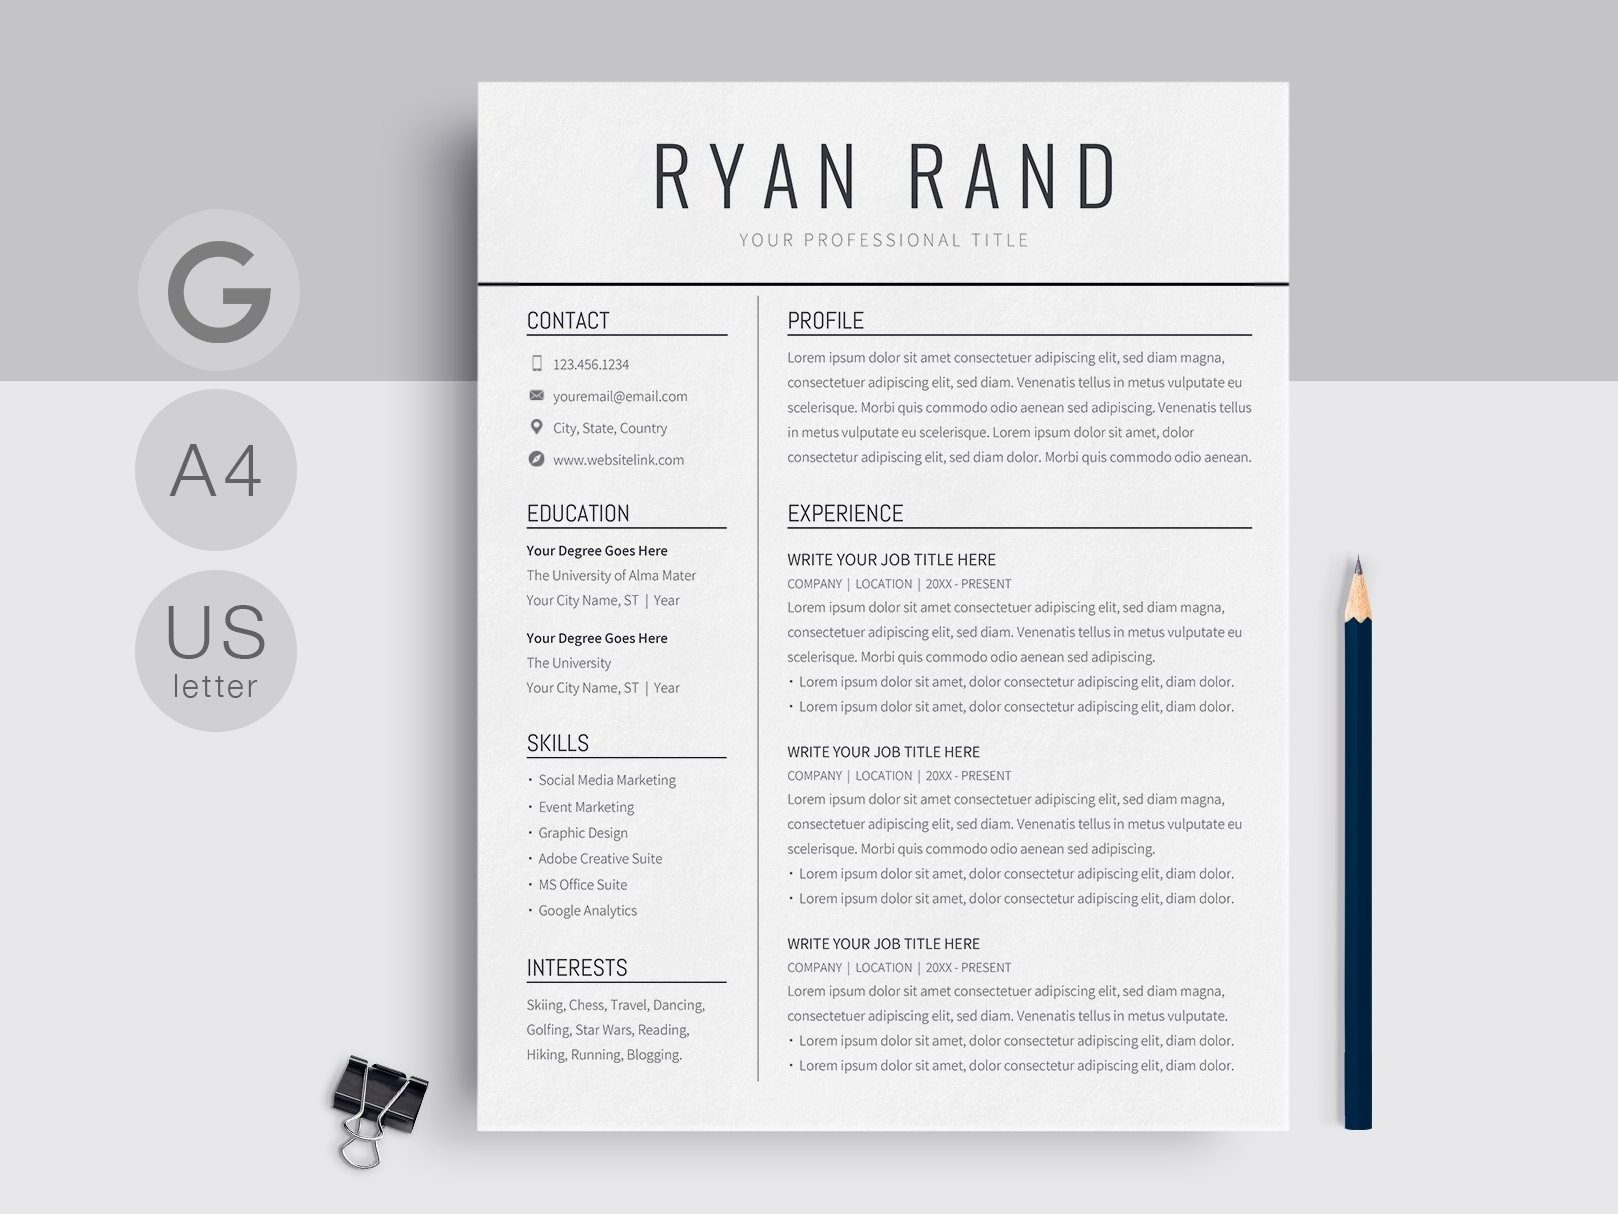 Cv Template Doc from cdn.dribbble.com